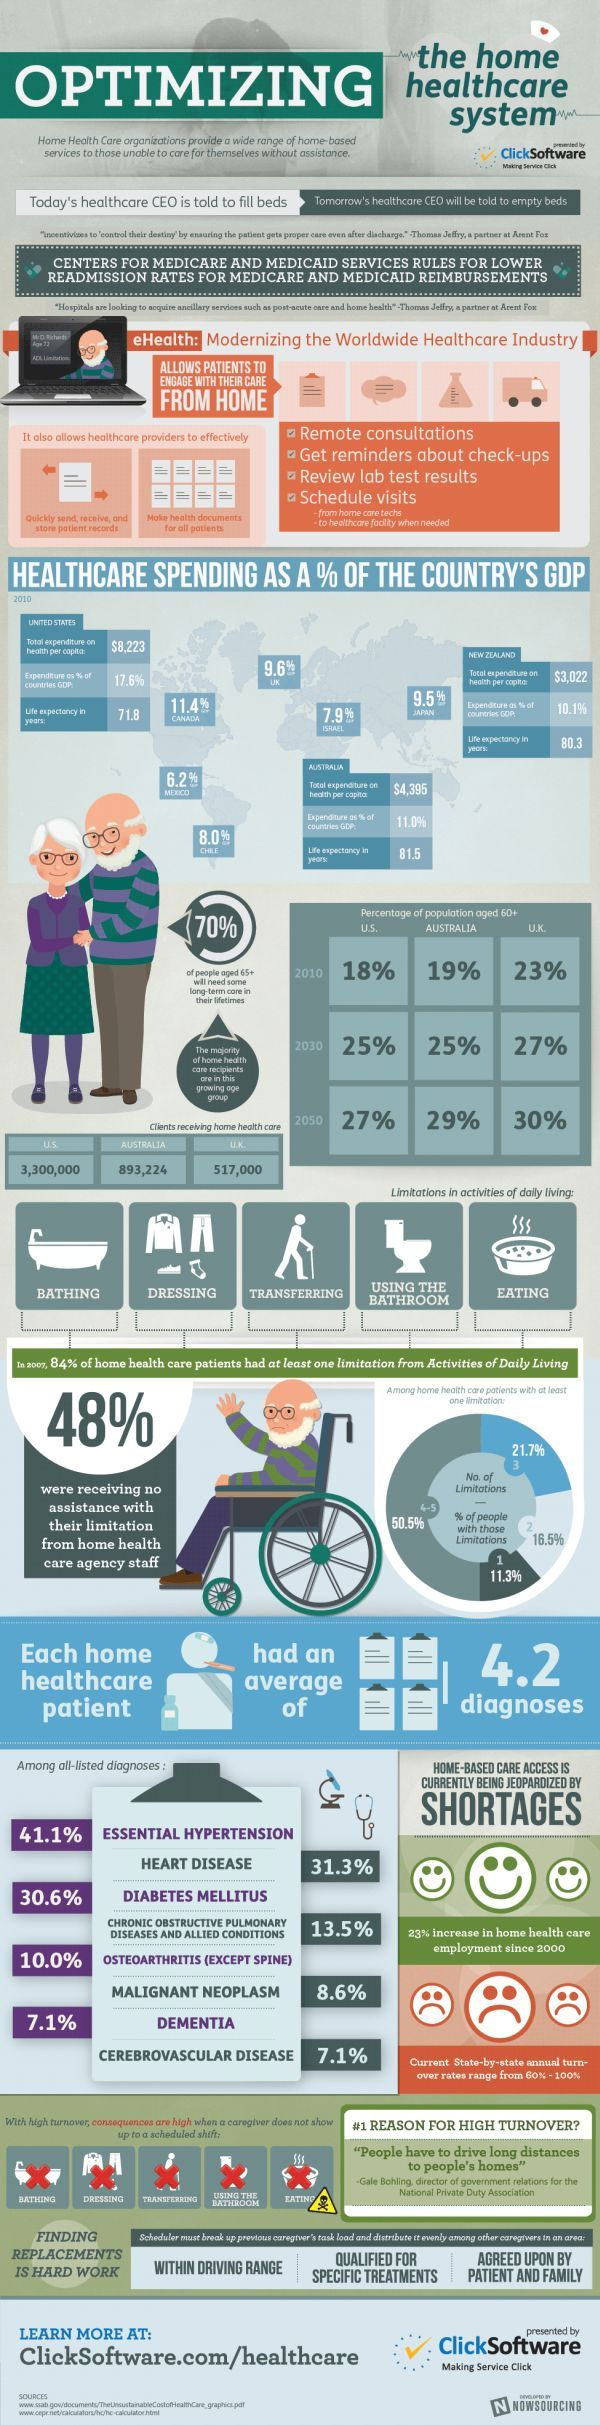 Infographic: See how eHealth aids in home health care | Articles | Main